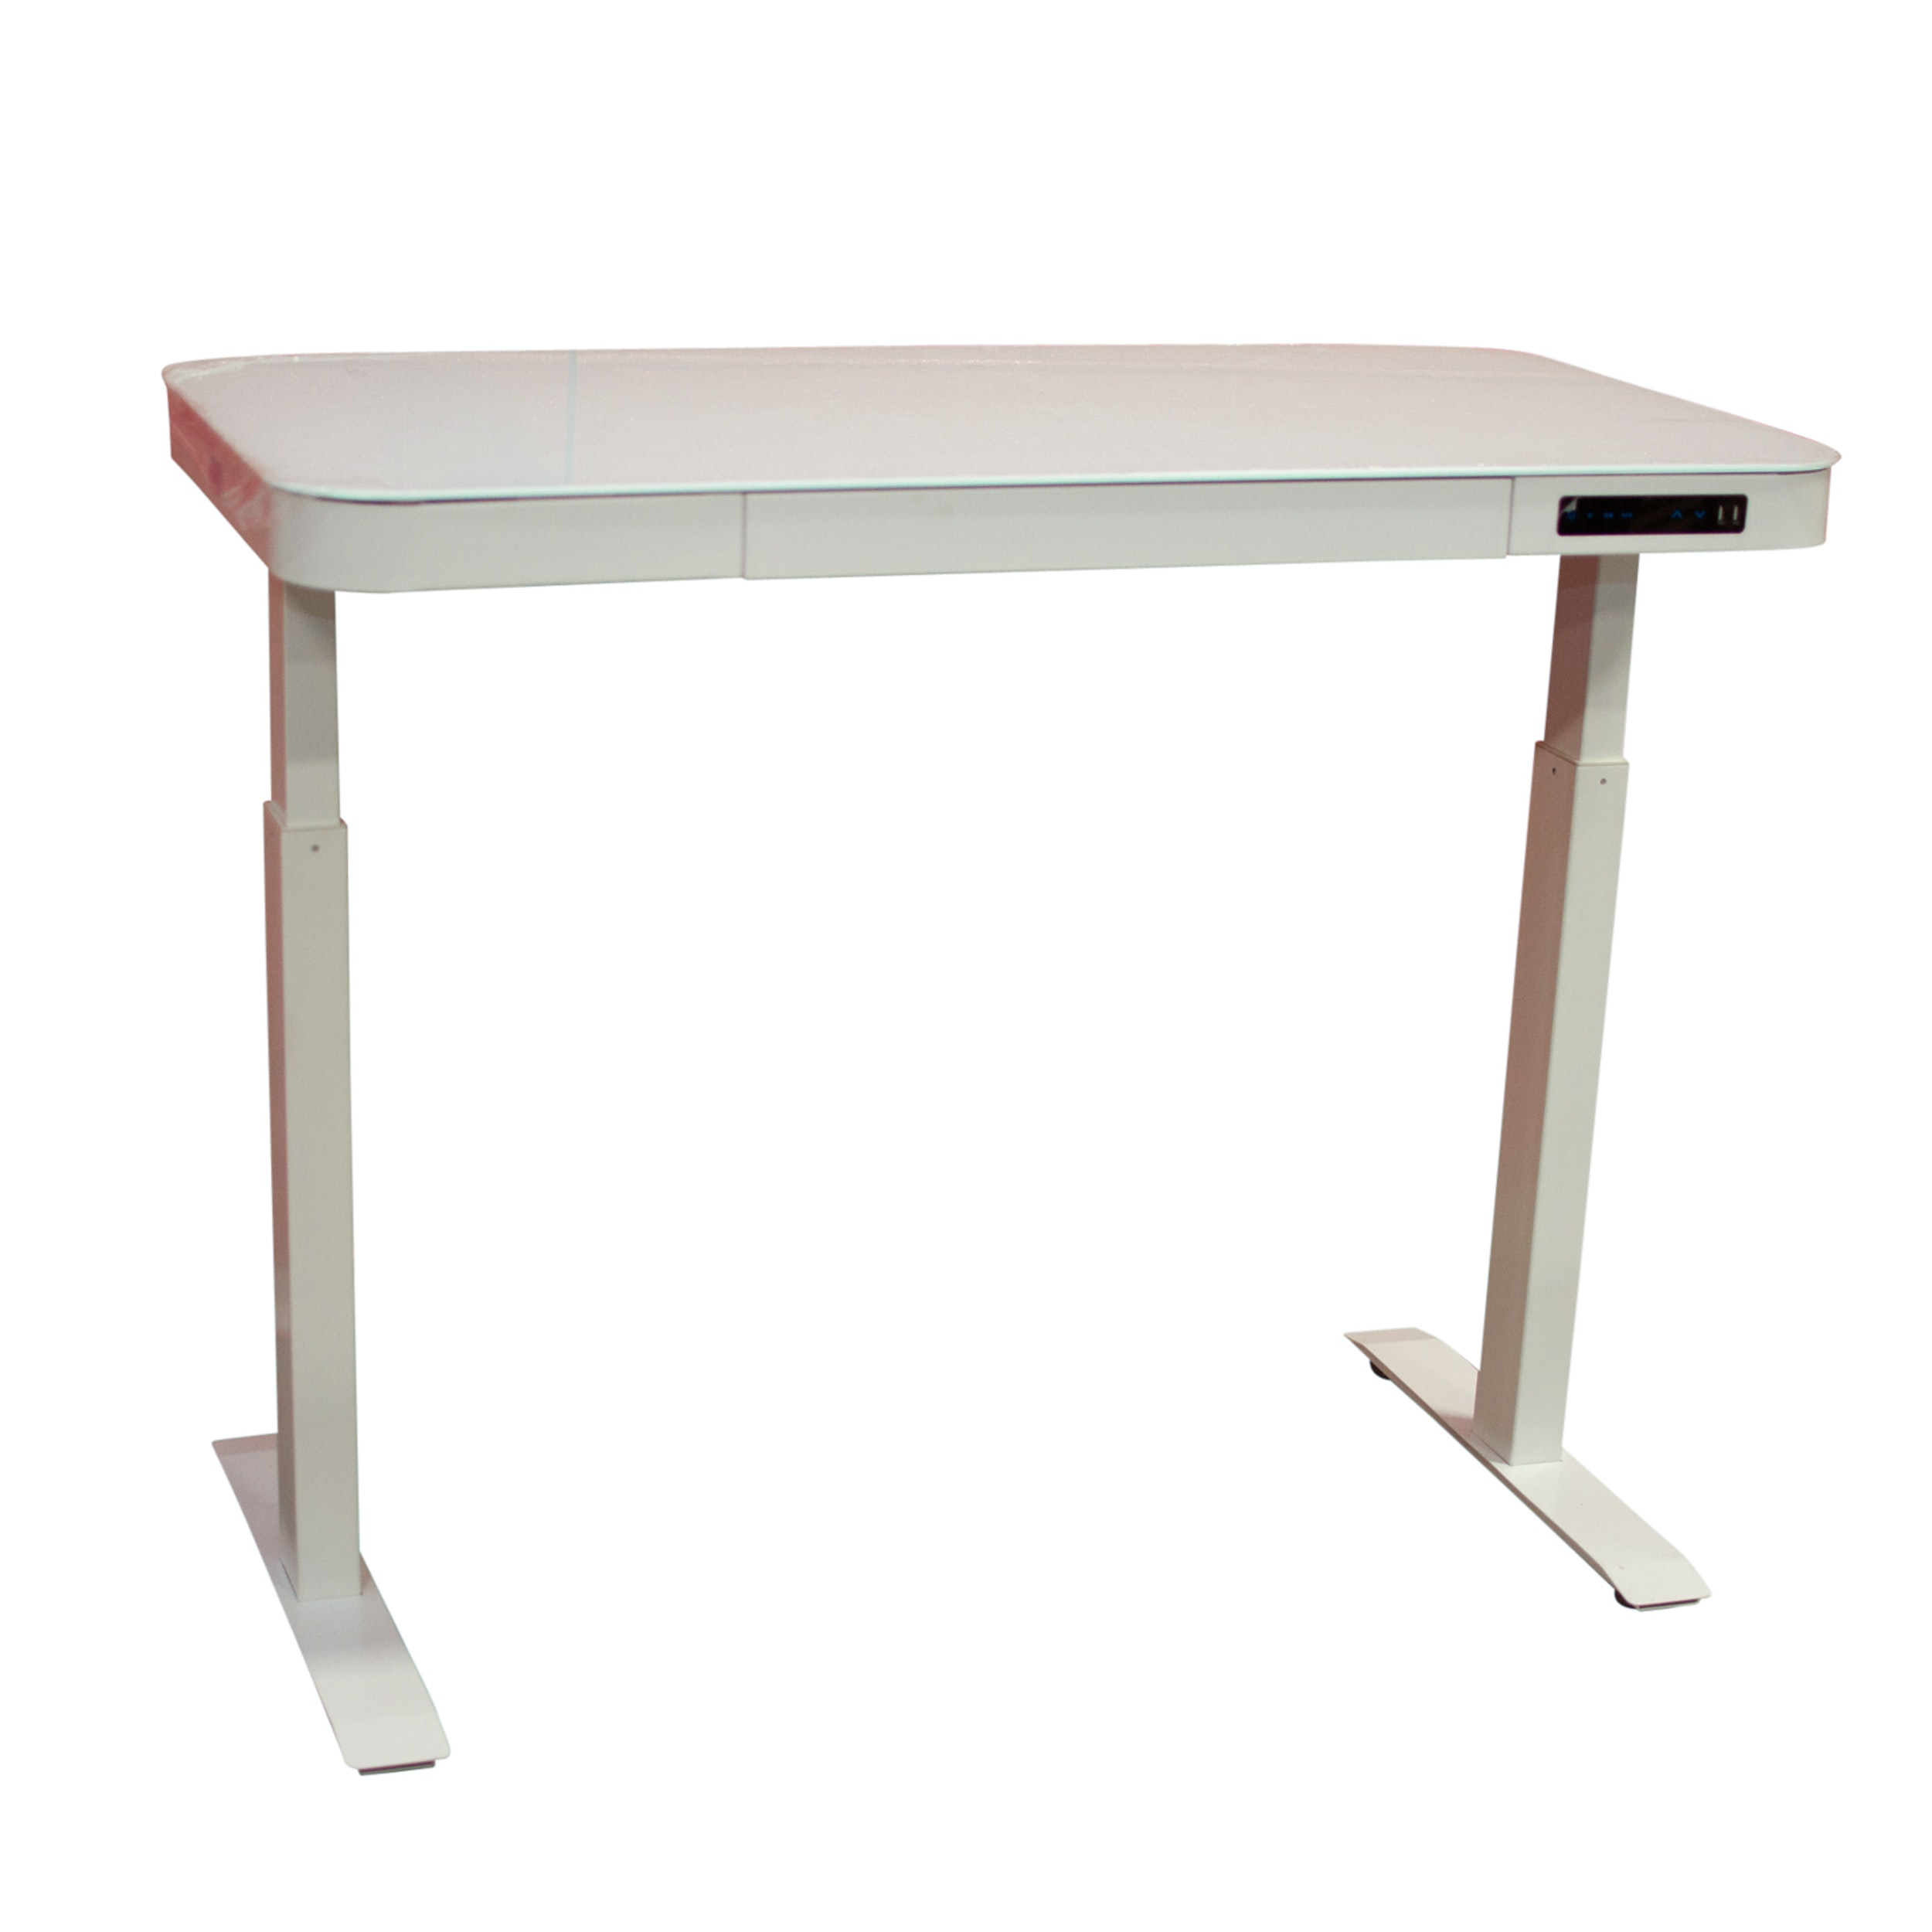 AirLift Adjustable Electric Standing Desk by Serville Classics